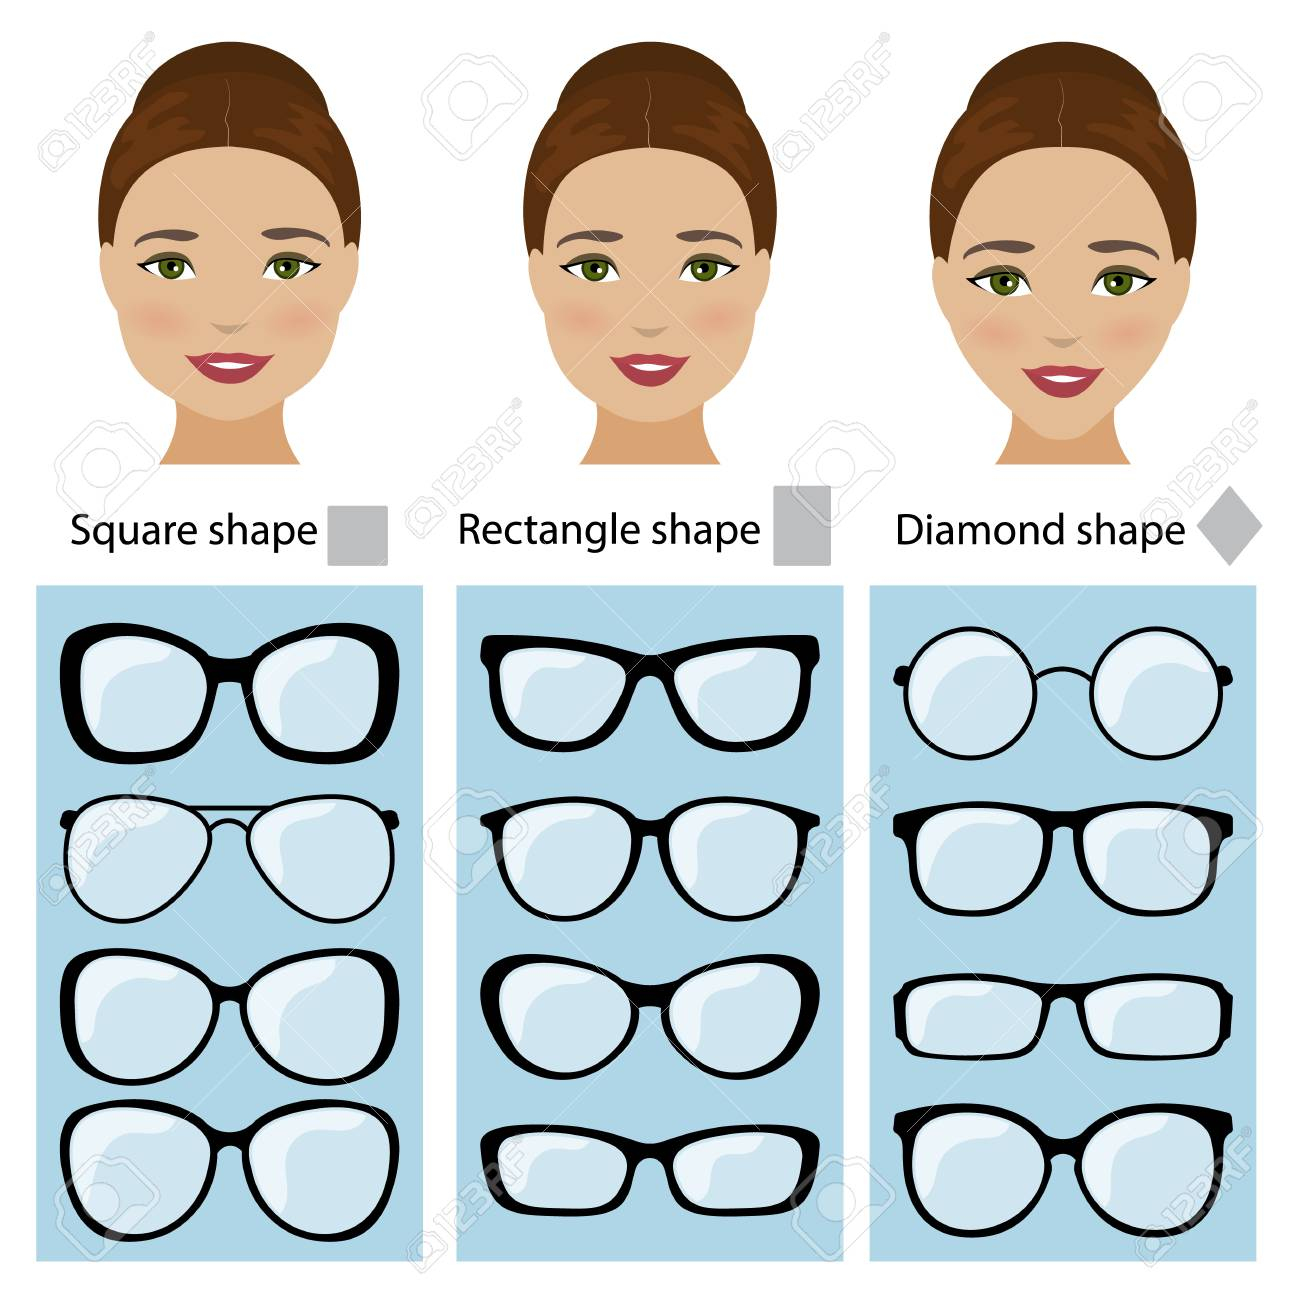 Spectacle Frames Shapes For Different Types Of Women Face Shapes